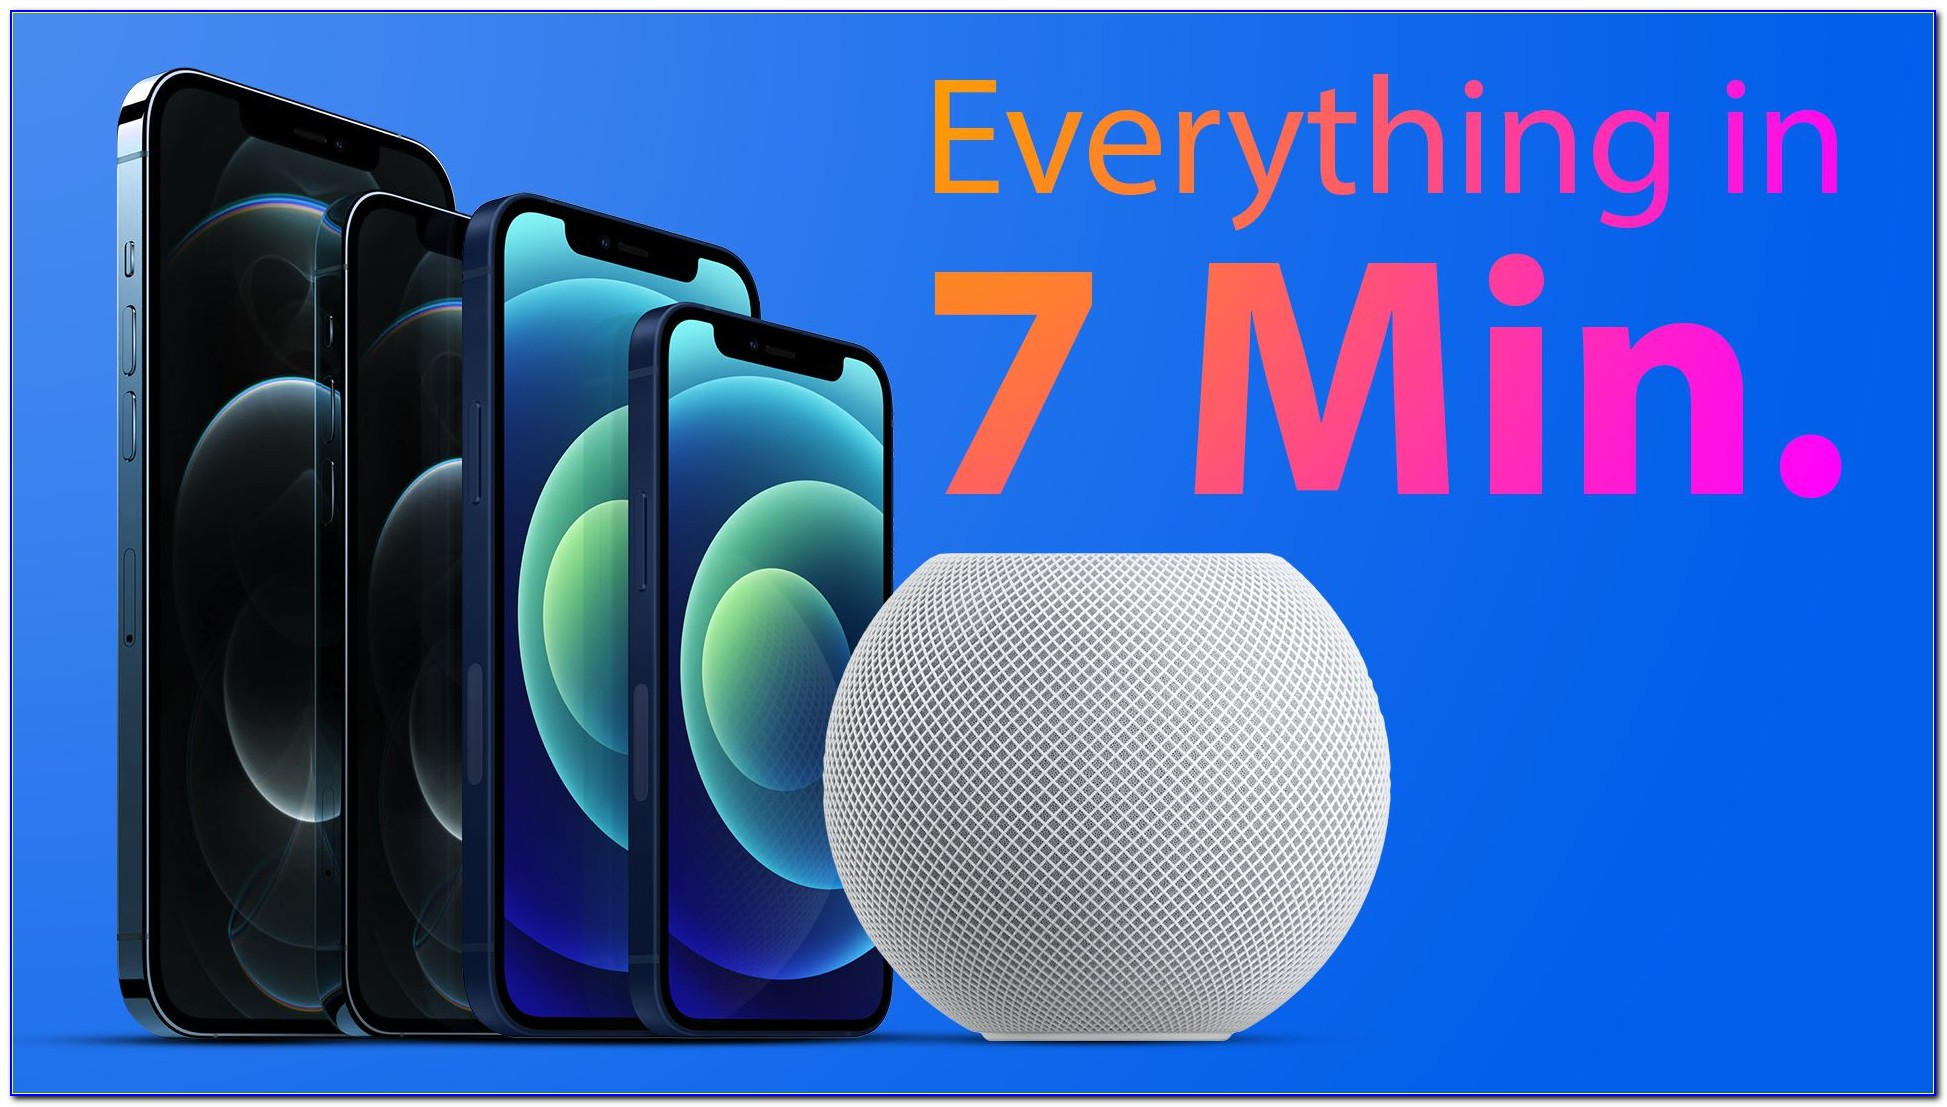 What New Products Did Apple Announce Today